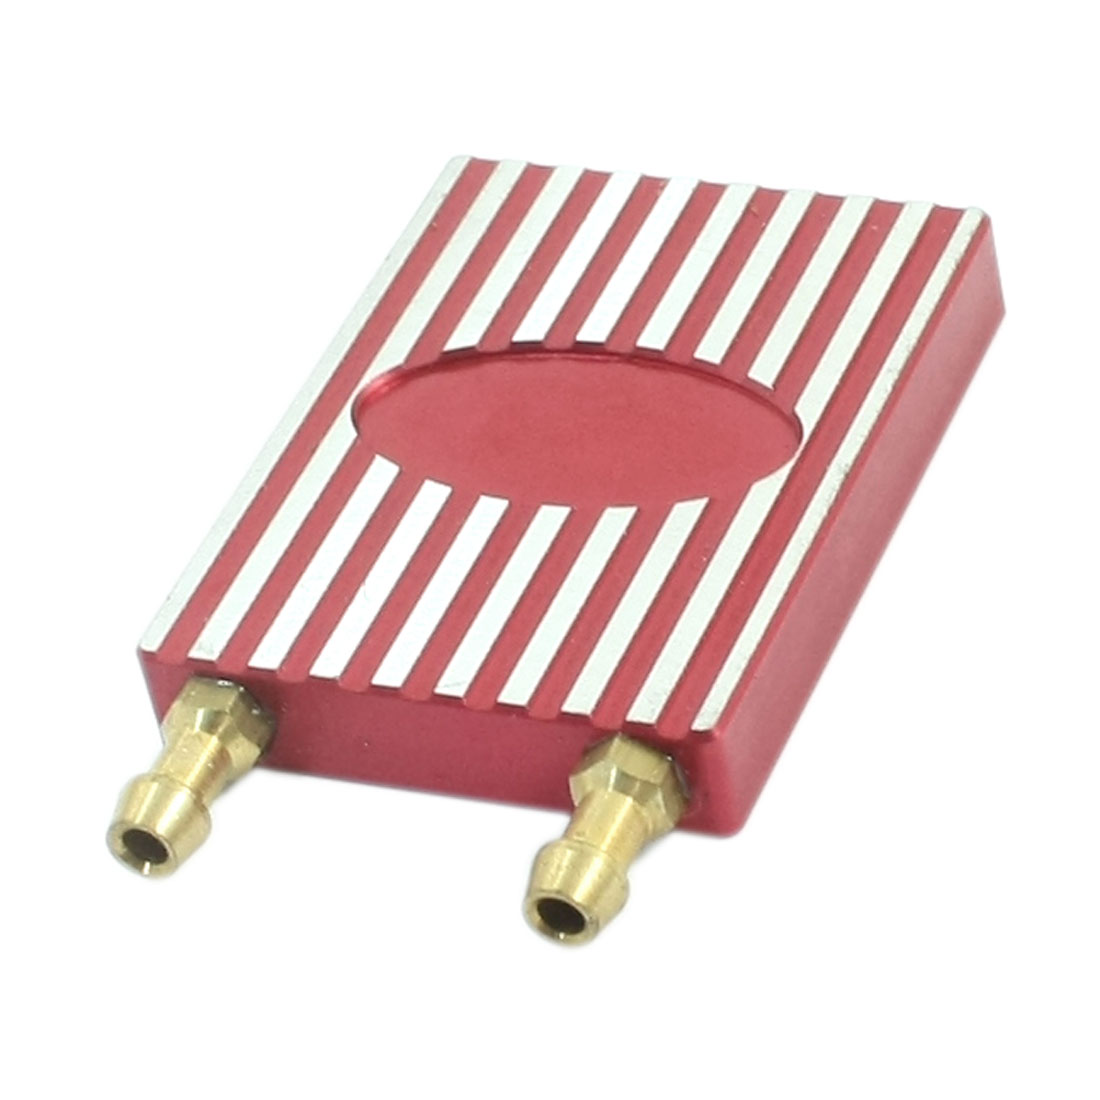 Brushless Electric RC Boat Fuchsia Metal CNC Water Cooling Plate 2 Ways 42mm x 32mm x 7mm